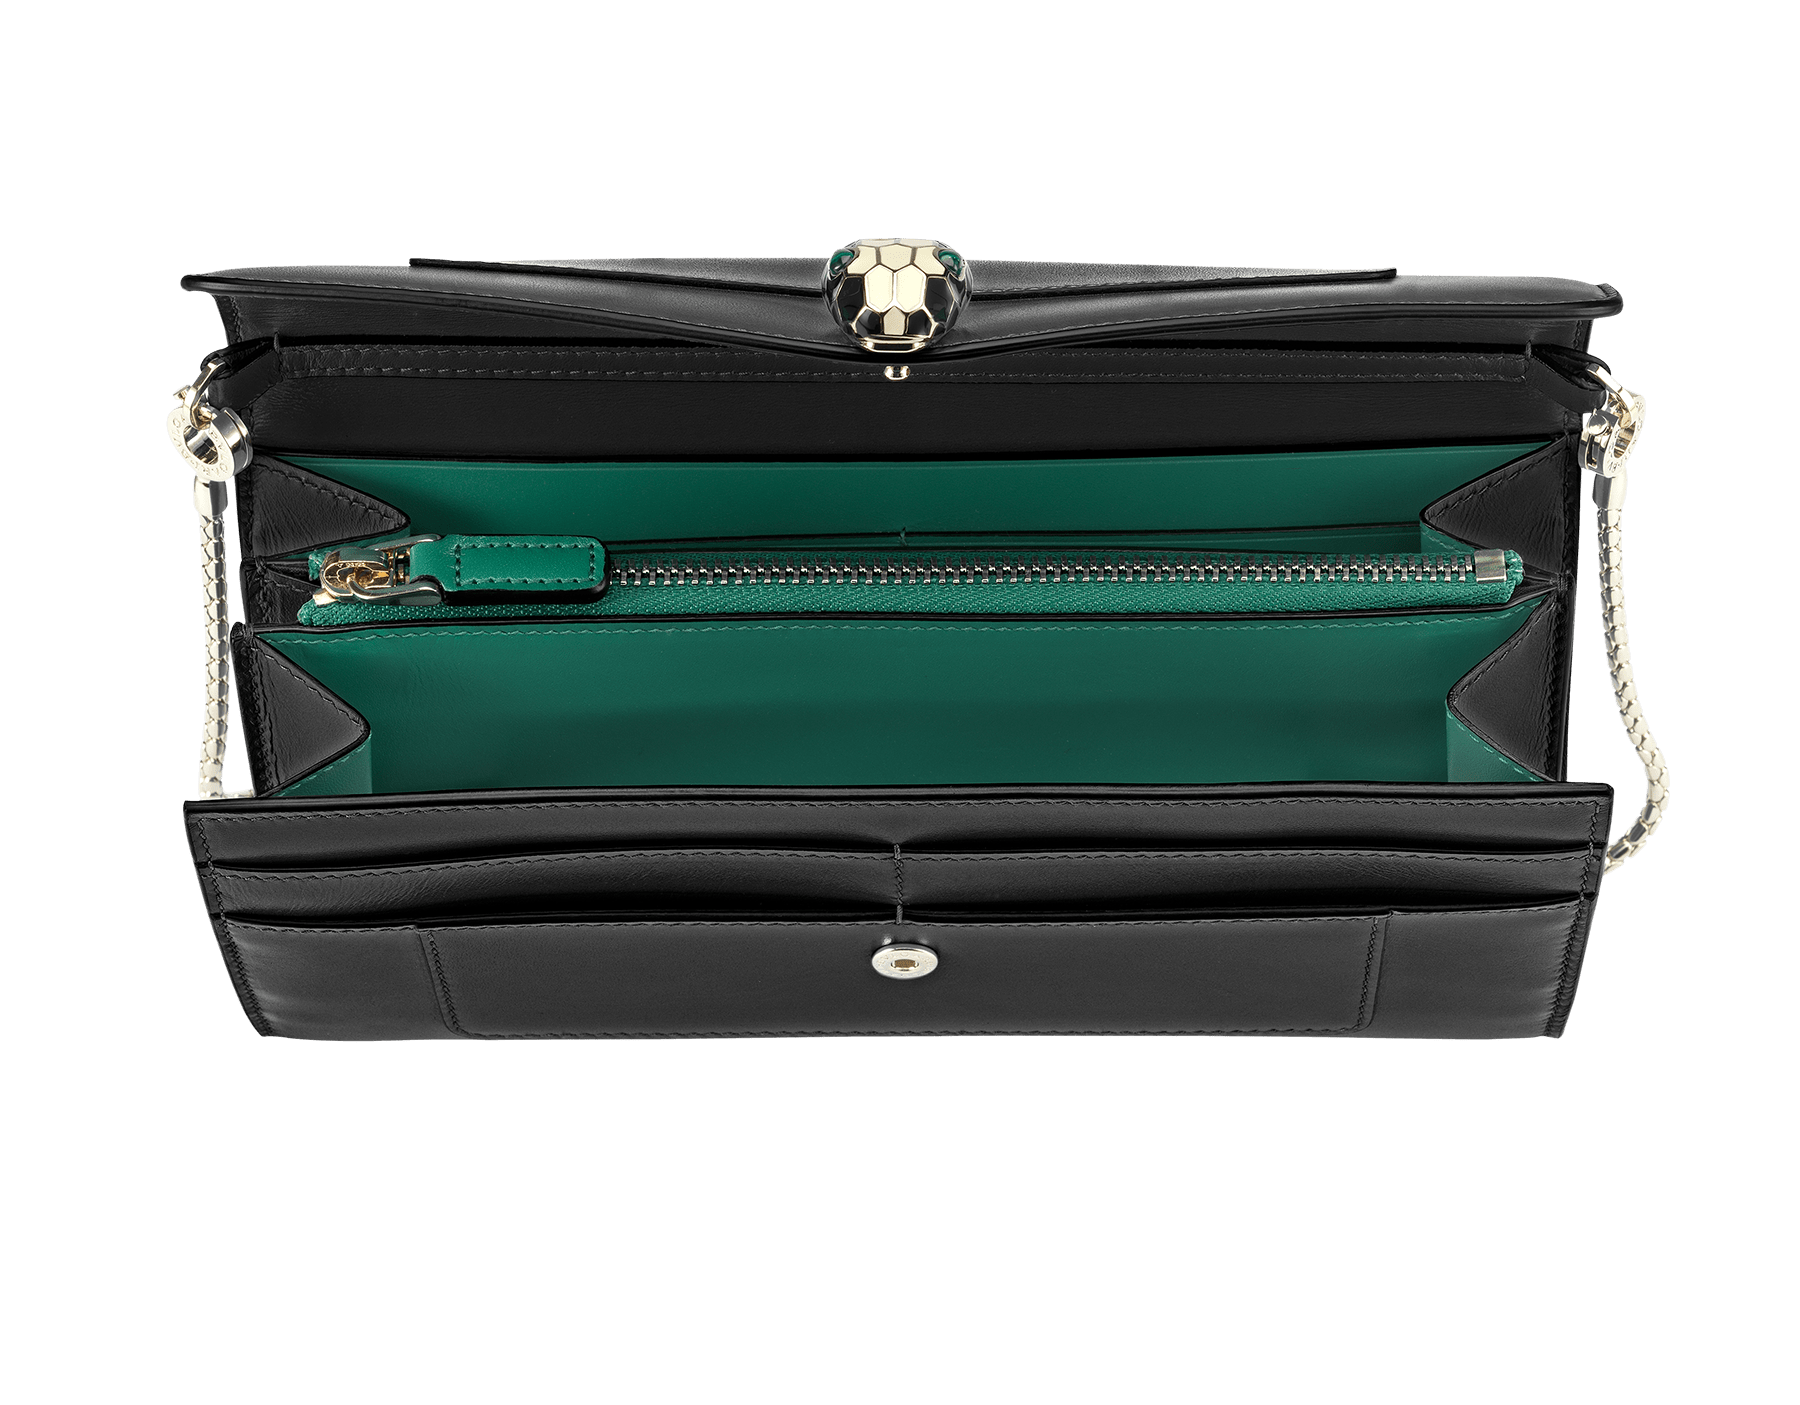 Wallet pouch in black and emerald green calf leather, with malachite nappa lining. Brass light gold plated hardware and removable snake body shaped short chain. 280467 image 2